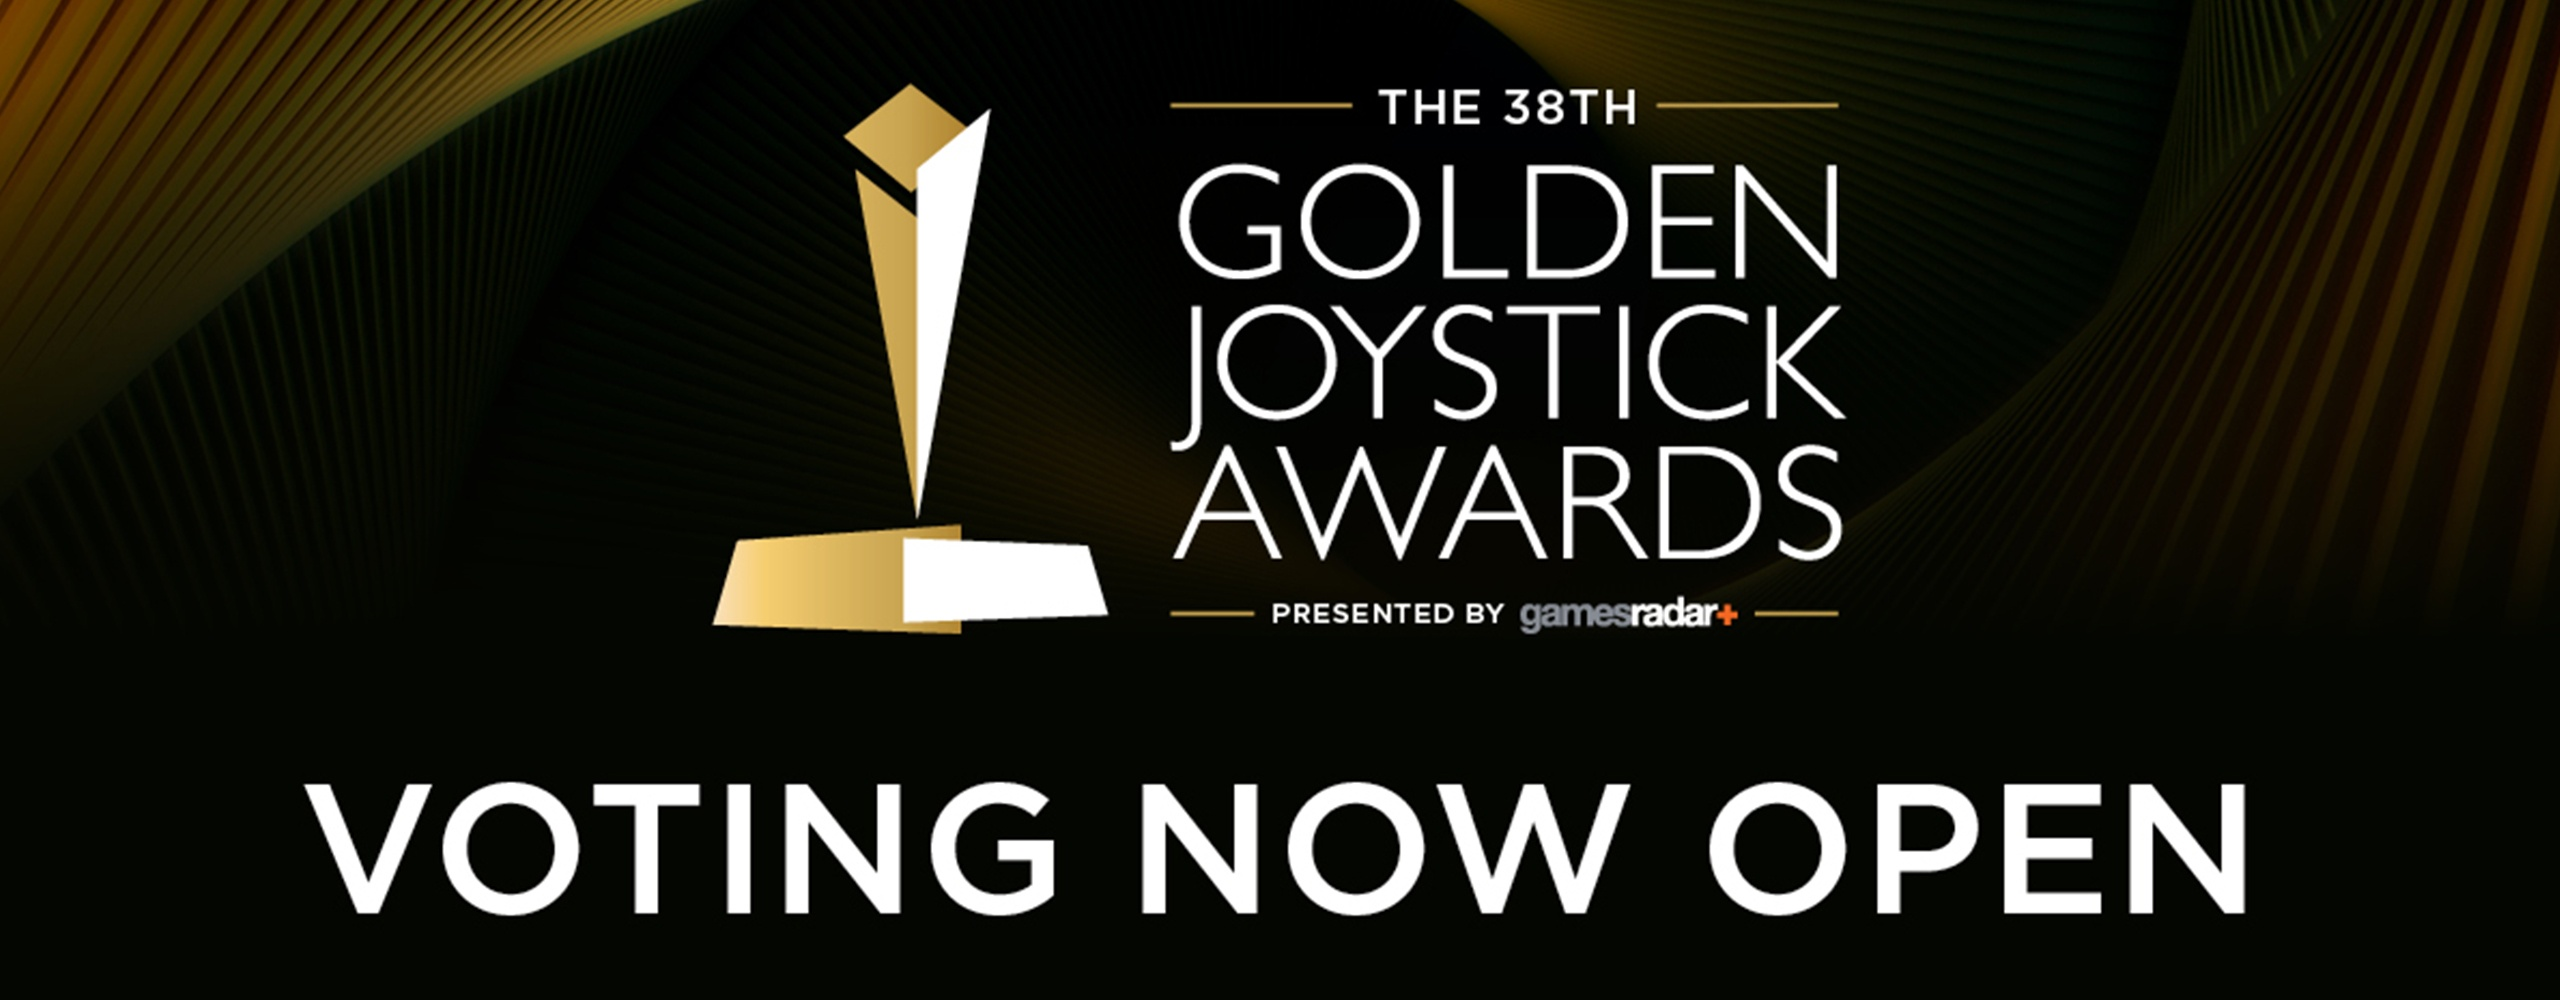 DEATH STRANDING and Control Nominated in the 38th Golden Joystick Awards